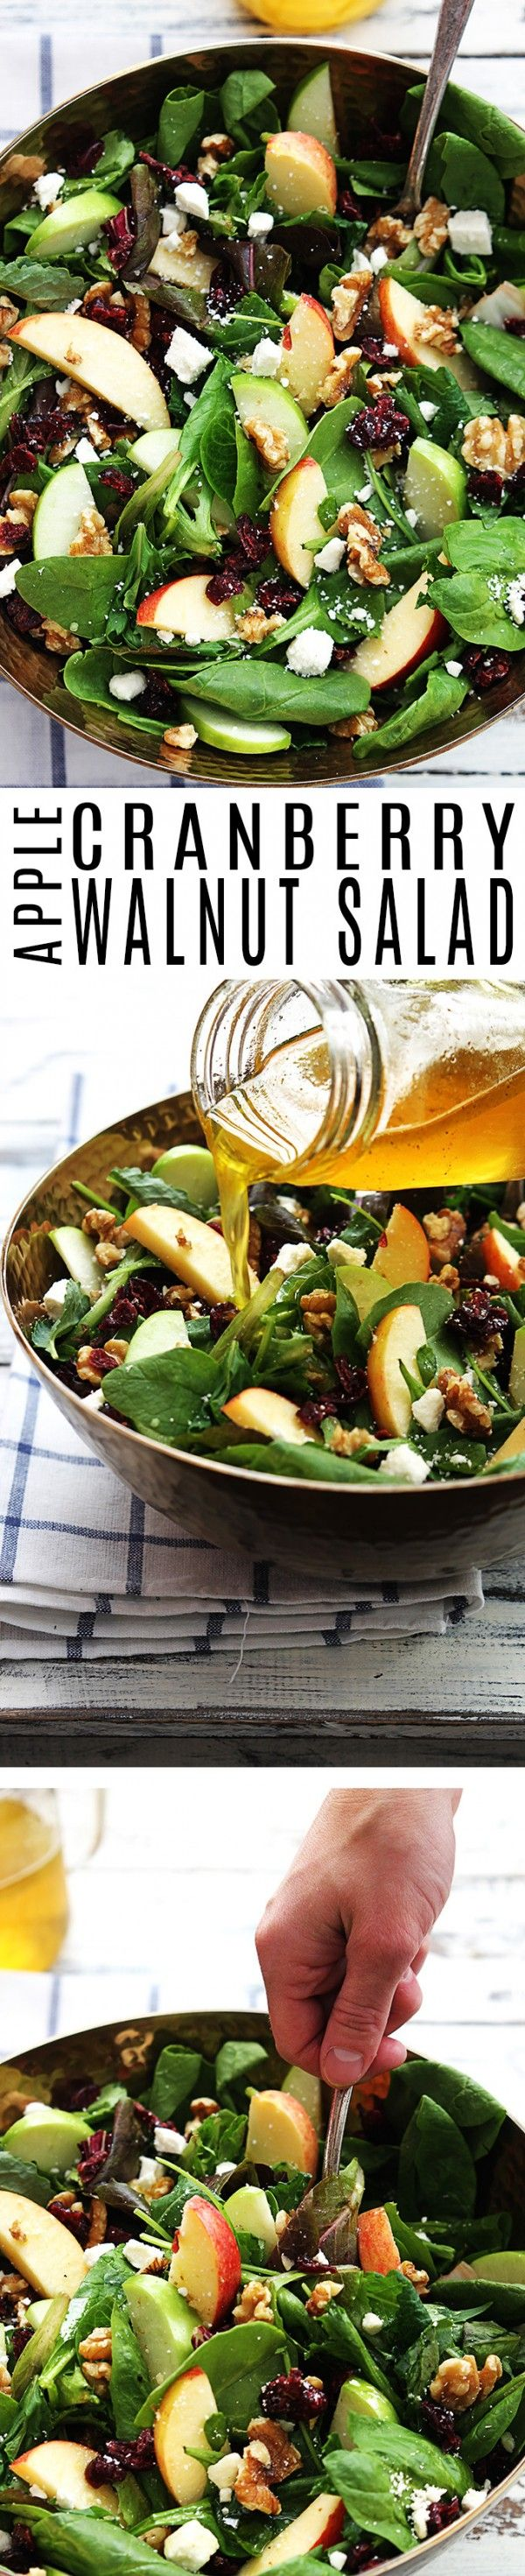 Get the recipe ♥ Apple Cranberry Walnut Salad #besttoeat @recipes_to_go                                                                                                                                                                                 More